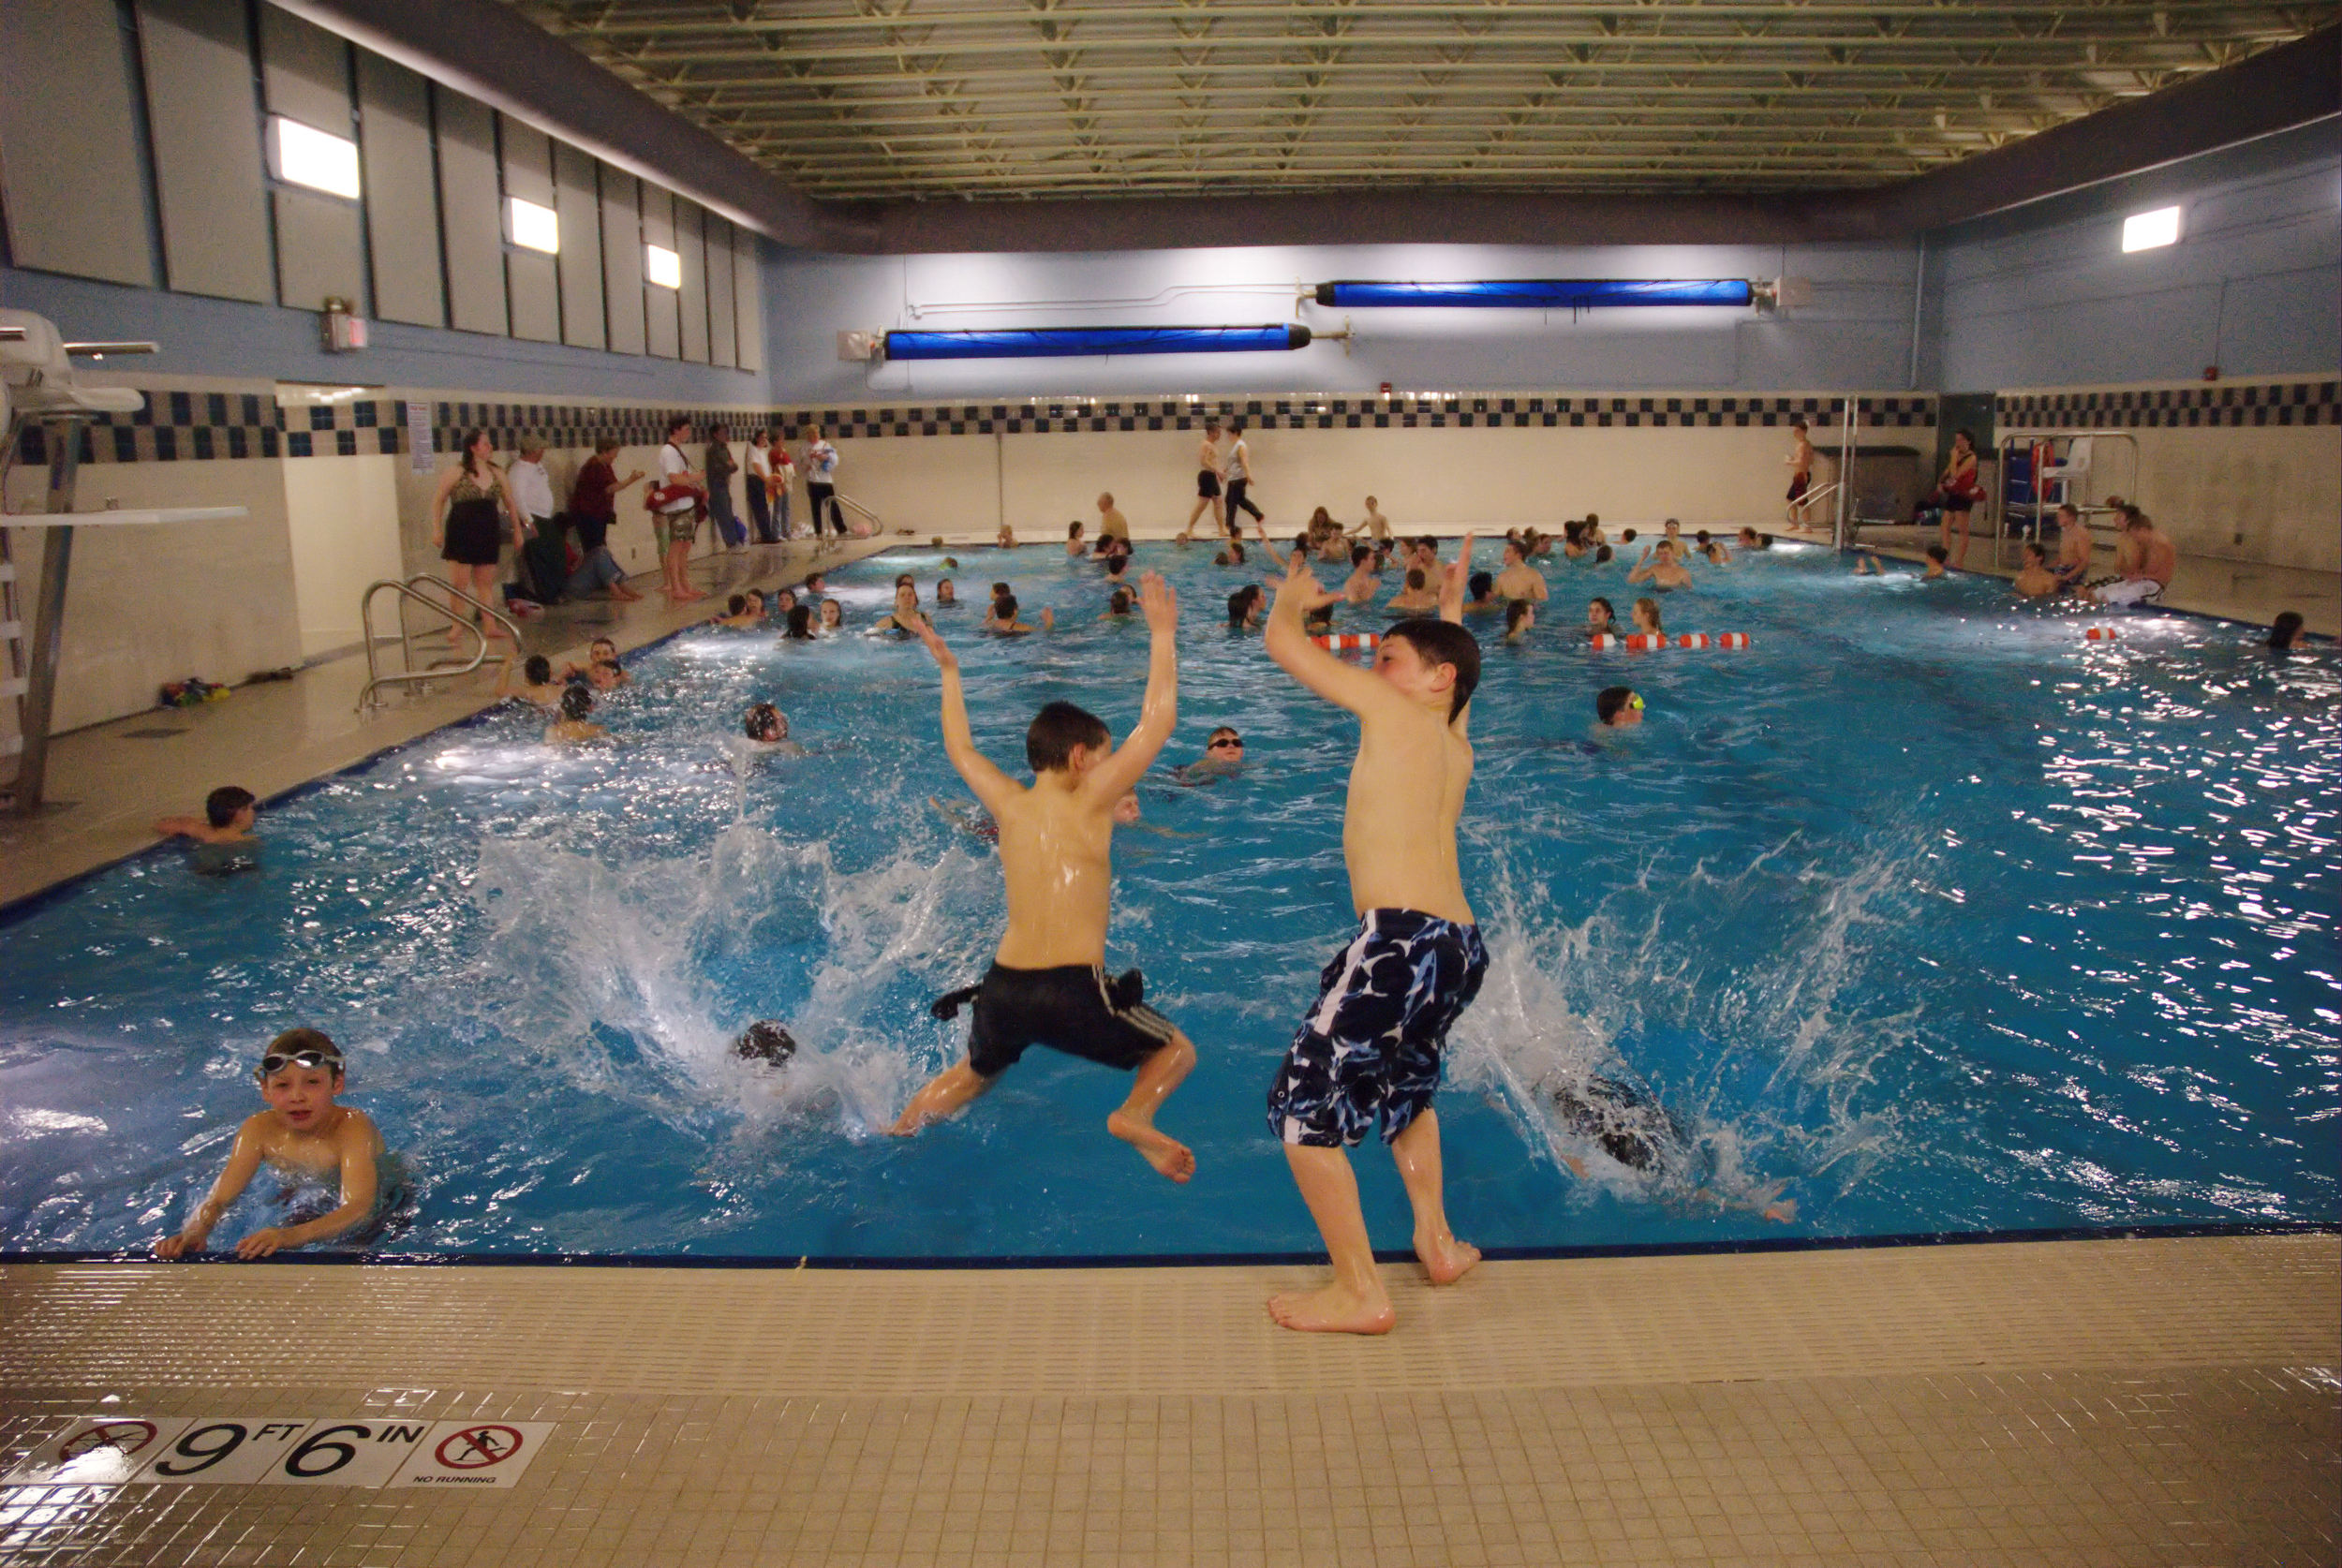 Kids jumping into a busy pool at Poynette High School in Poynette, WI